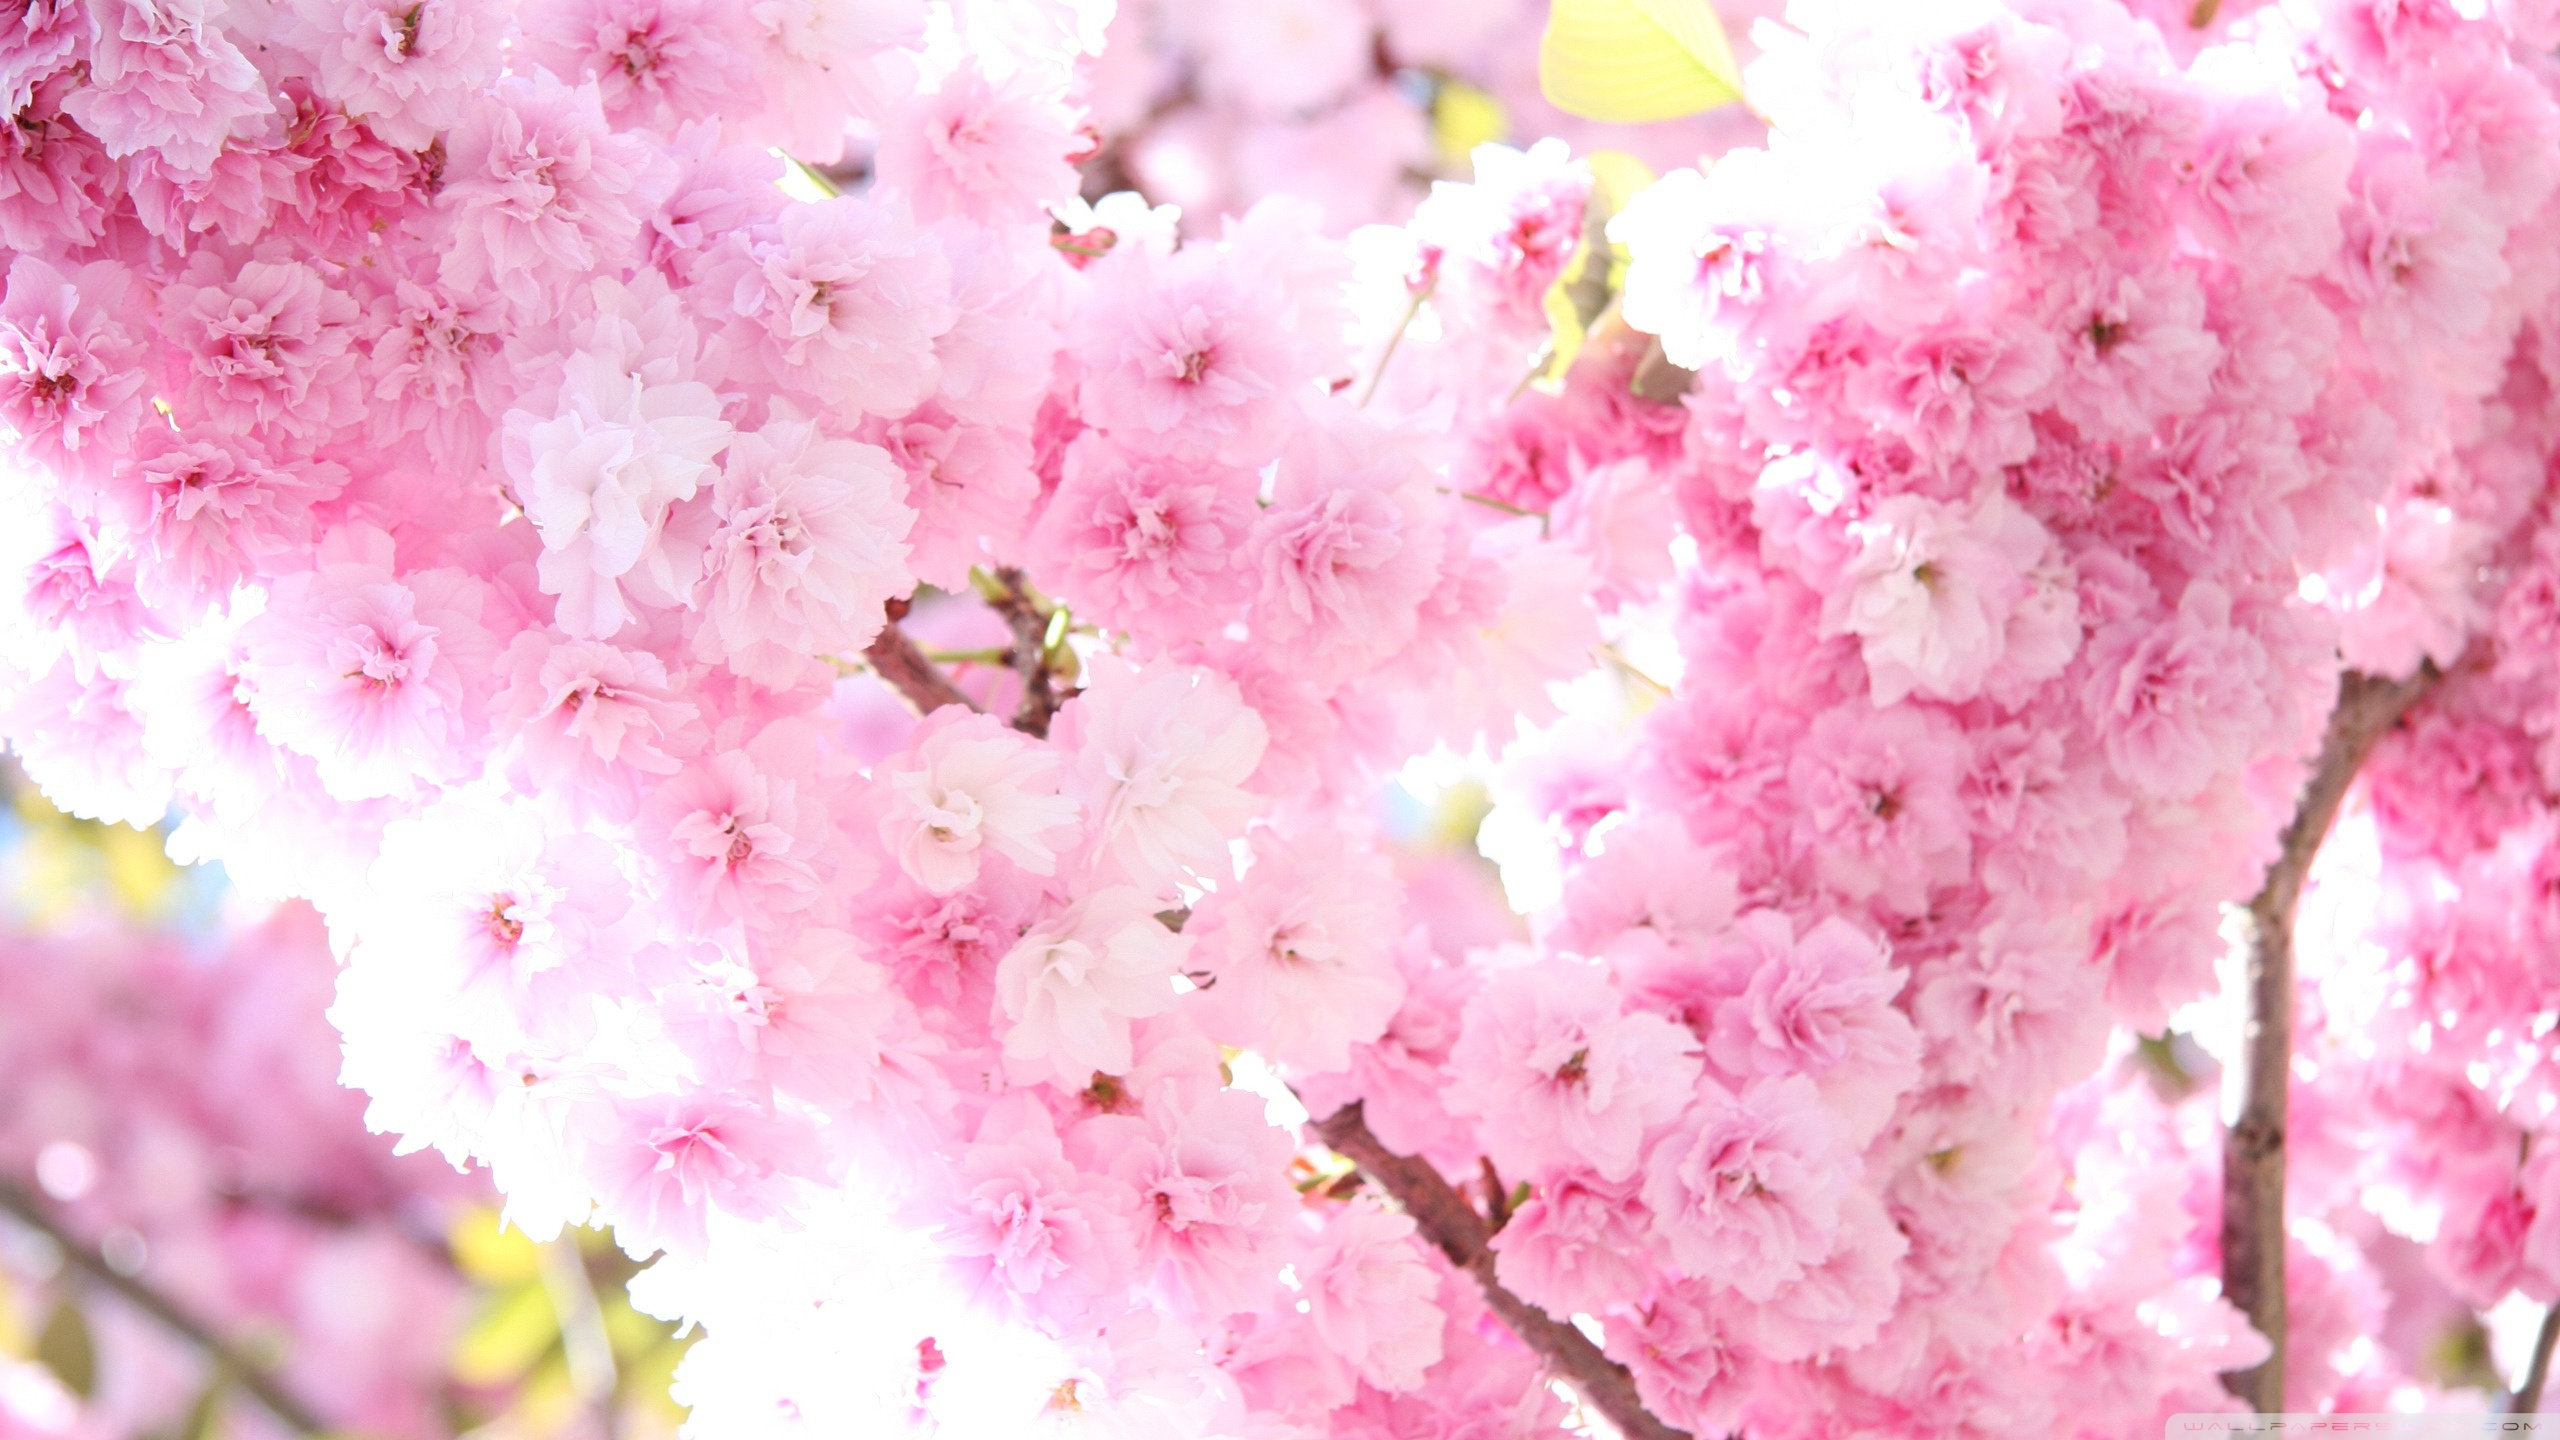 prunus_flowers-wallpaper-2560x1440